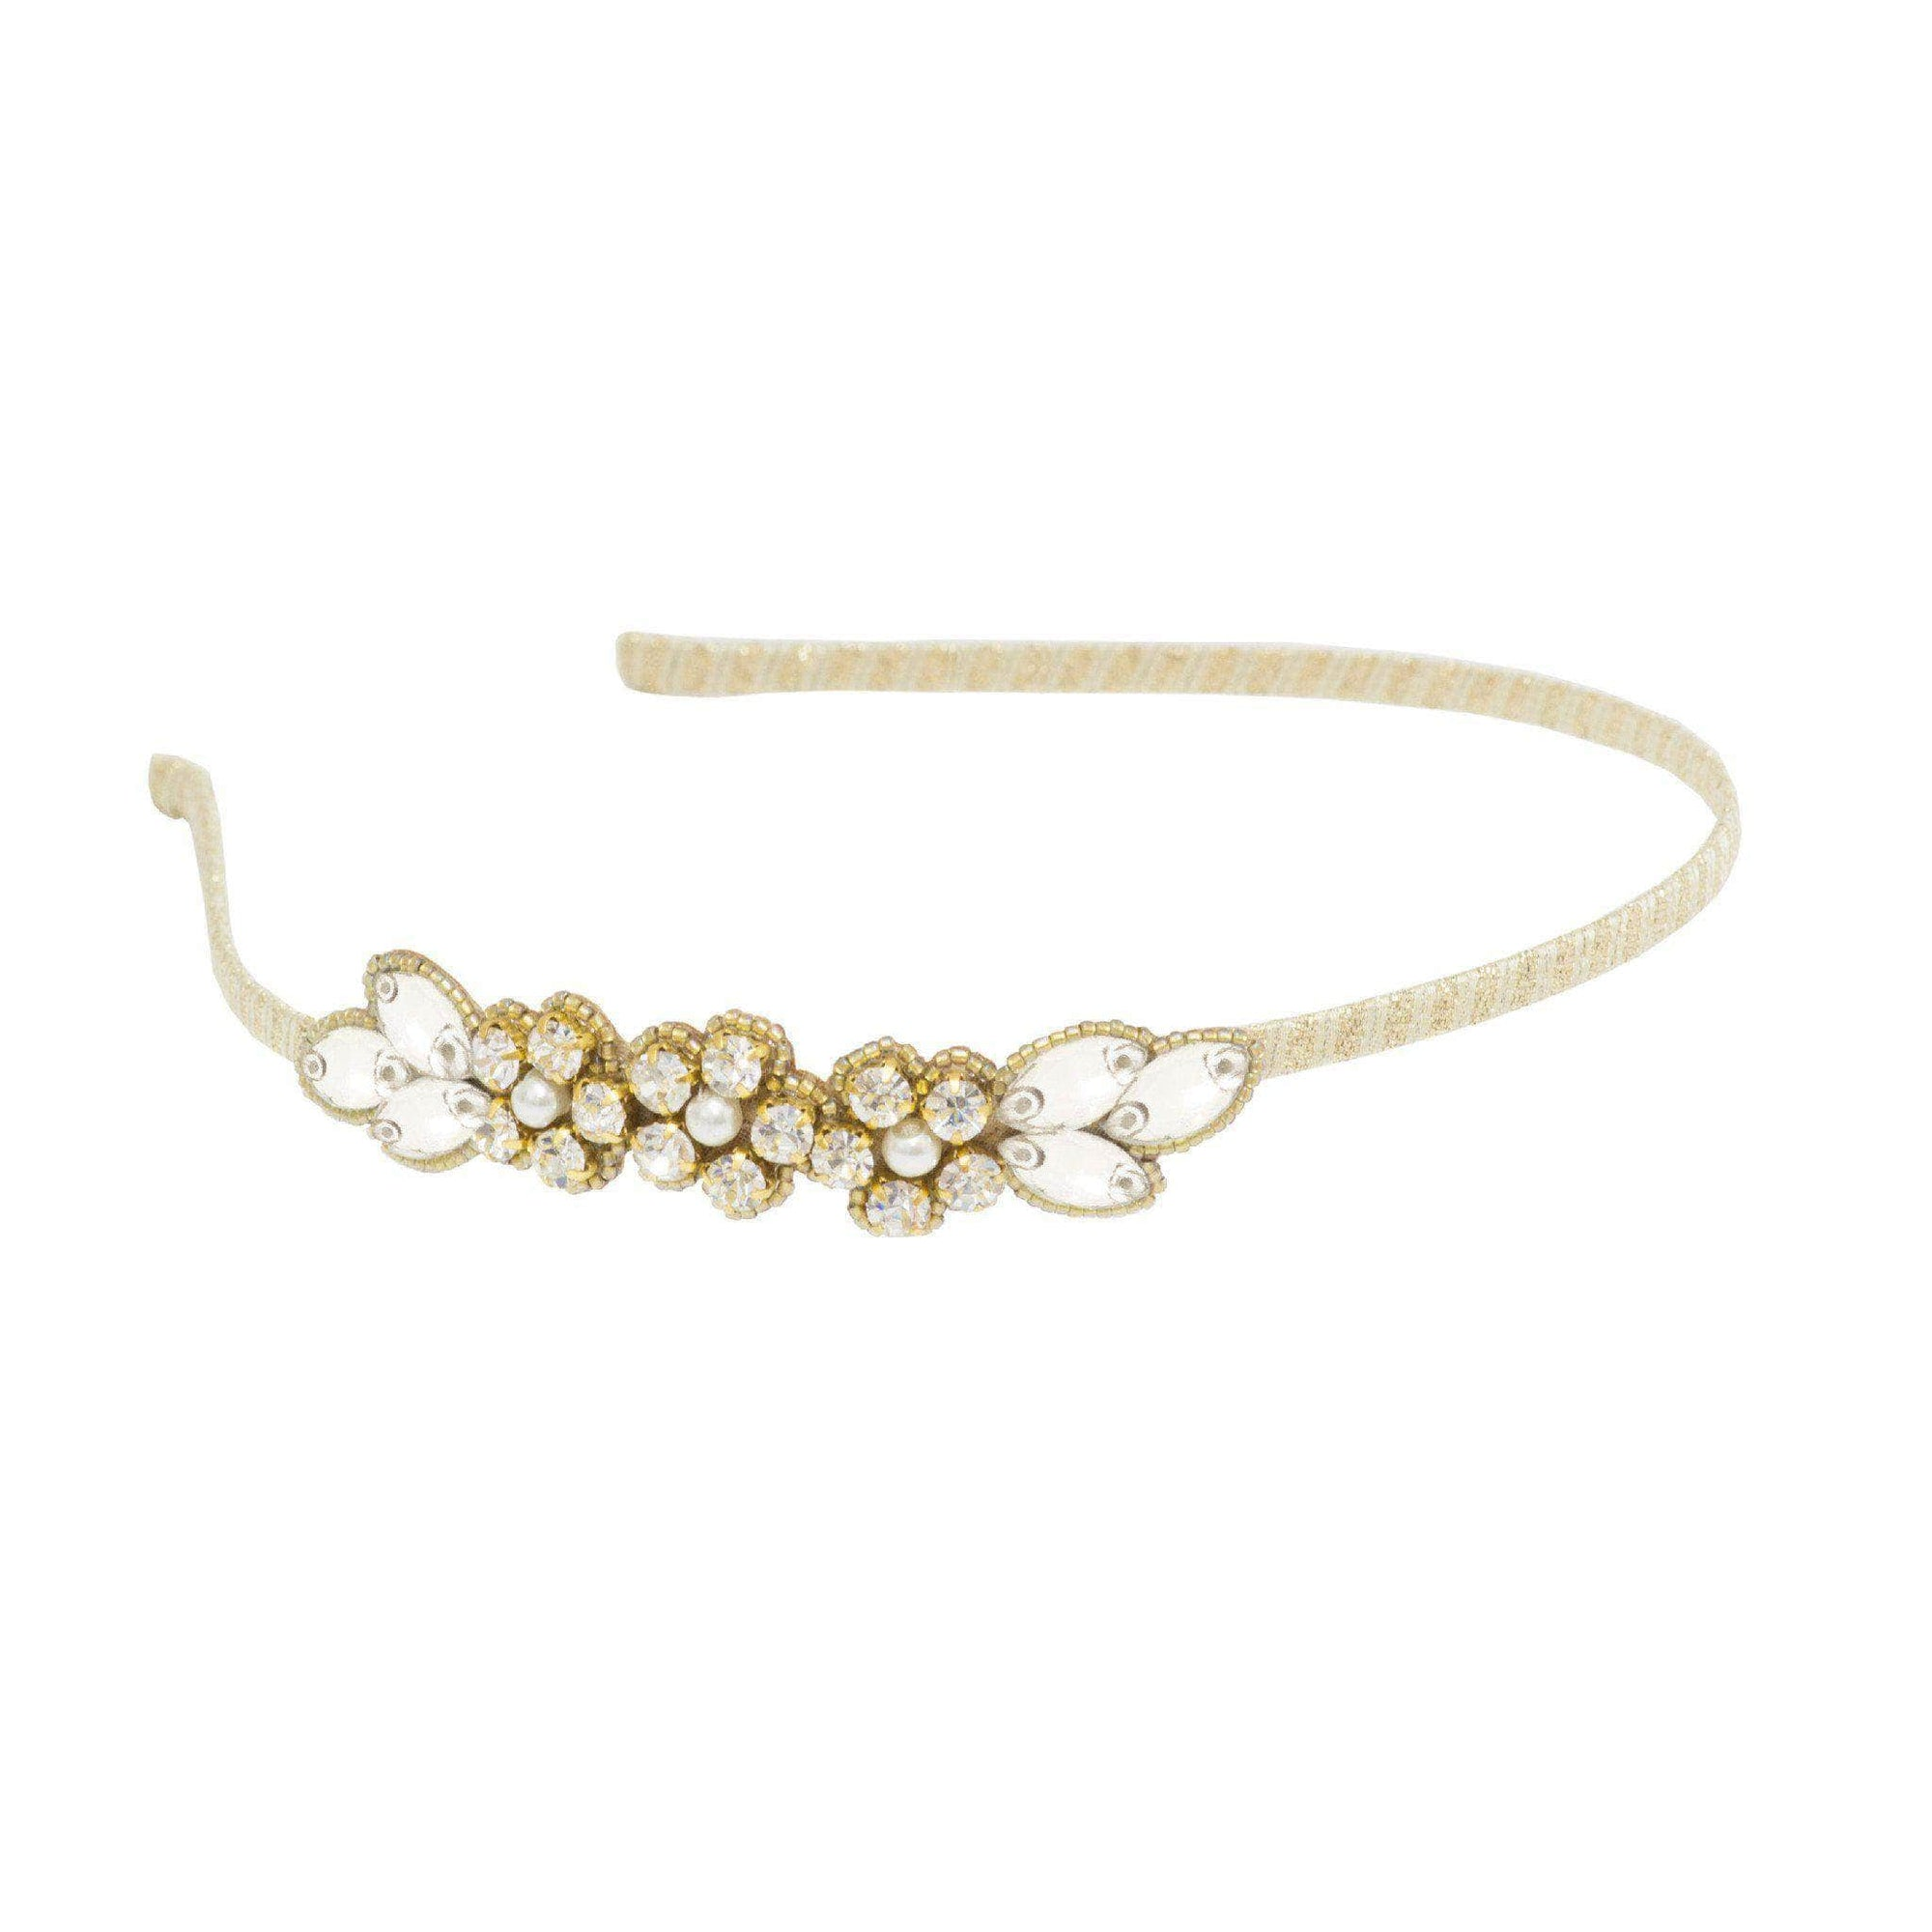 Wedding Headband Gold crystal wedding headband- leaf and floral arrangement 'Livia'